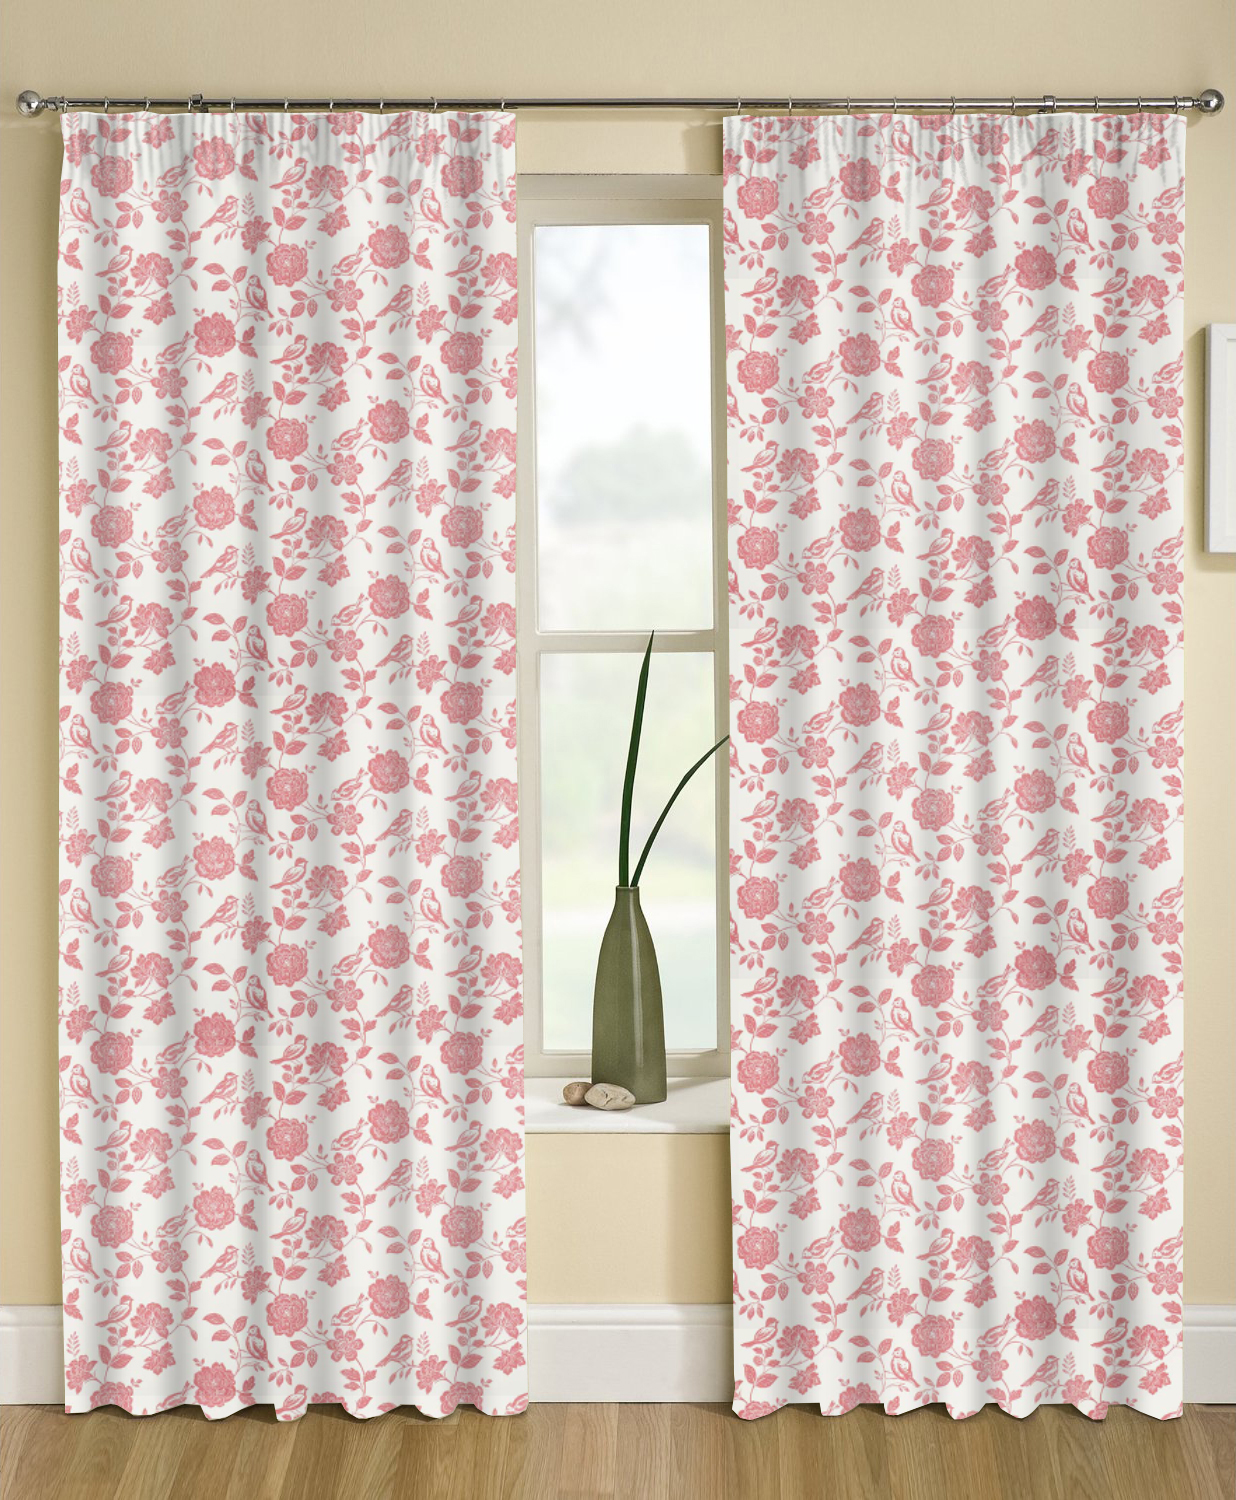 Superb img of Bird Garden Curtains Blind in Peony Quality Made to Measure Curtains with #913A3D color and 1236x1500 pixels